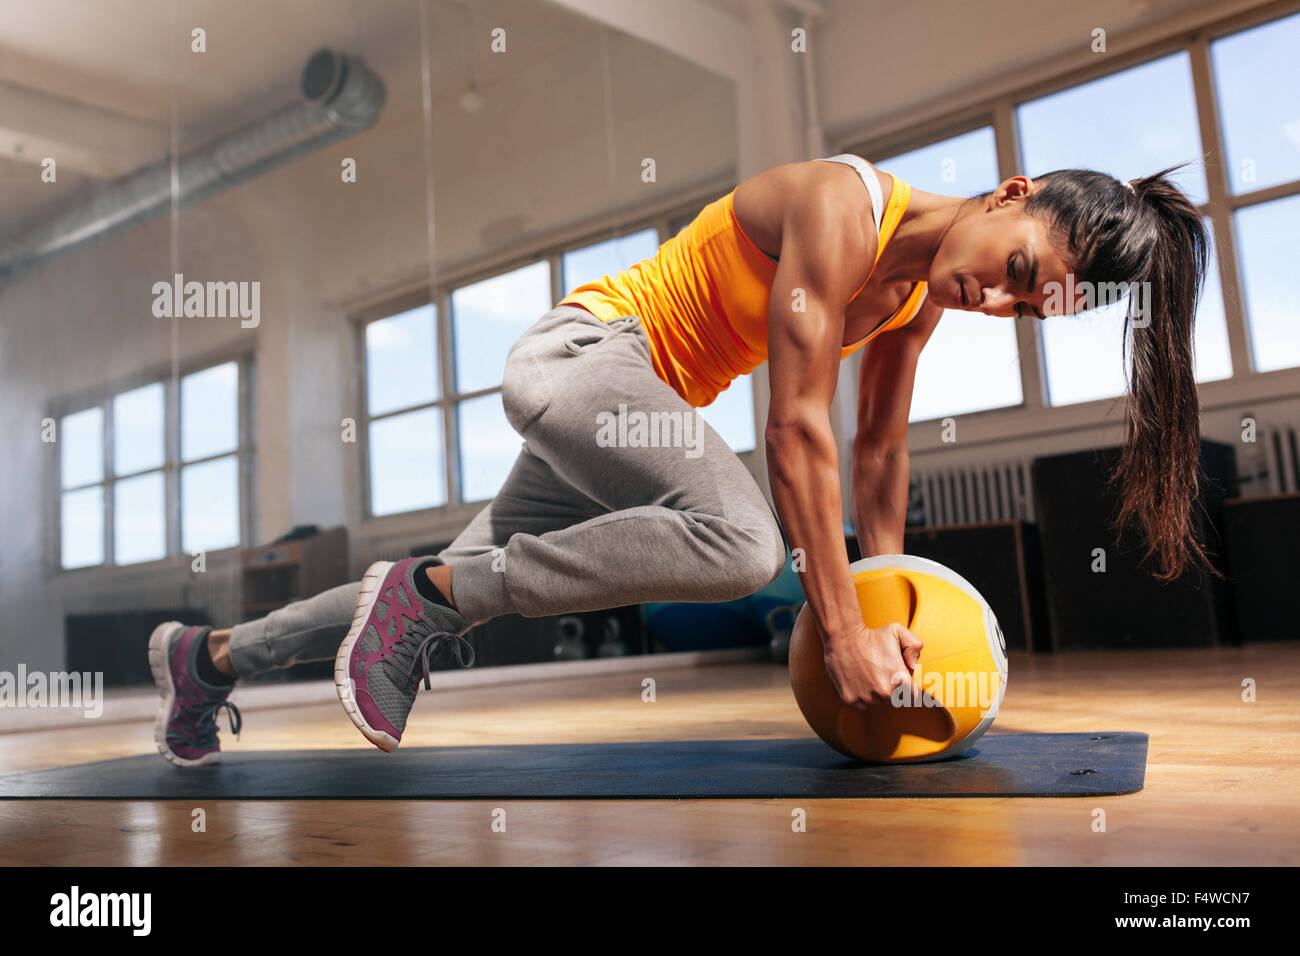 Fit female doing intense core workout in gym. Young muscular woman doing core exercise on fitness mat in health - Stock Image